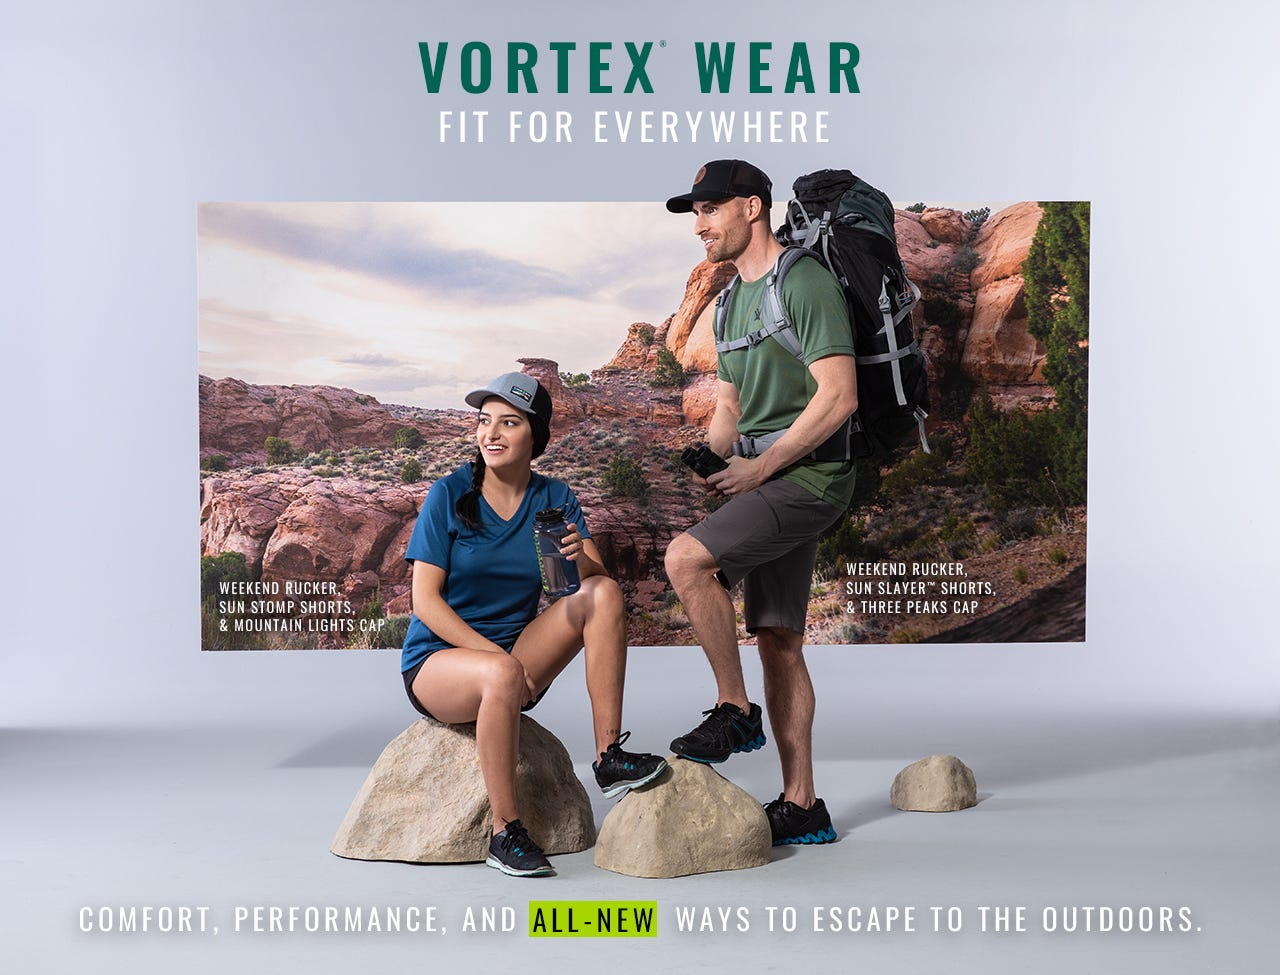 New Vortex Wear - Fit for Everywhere